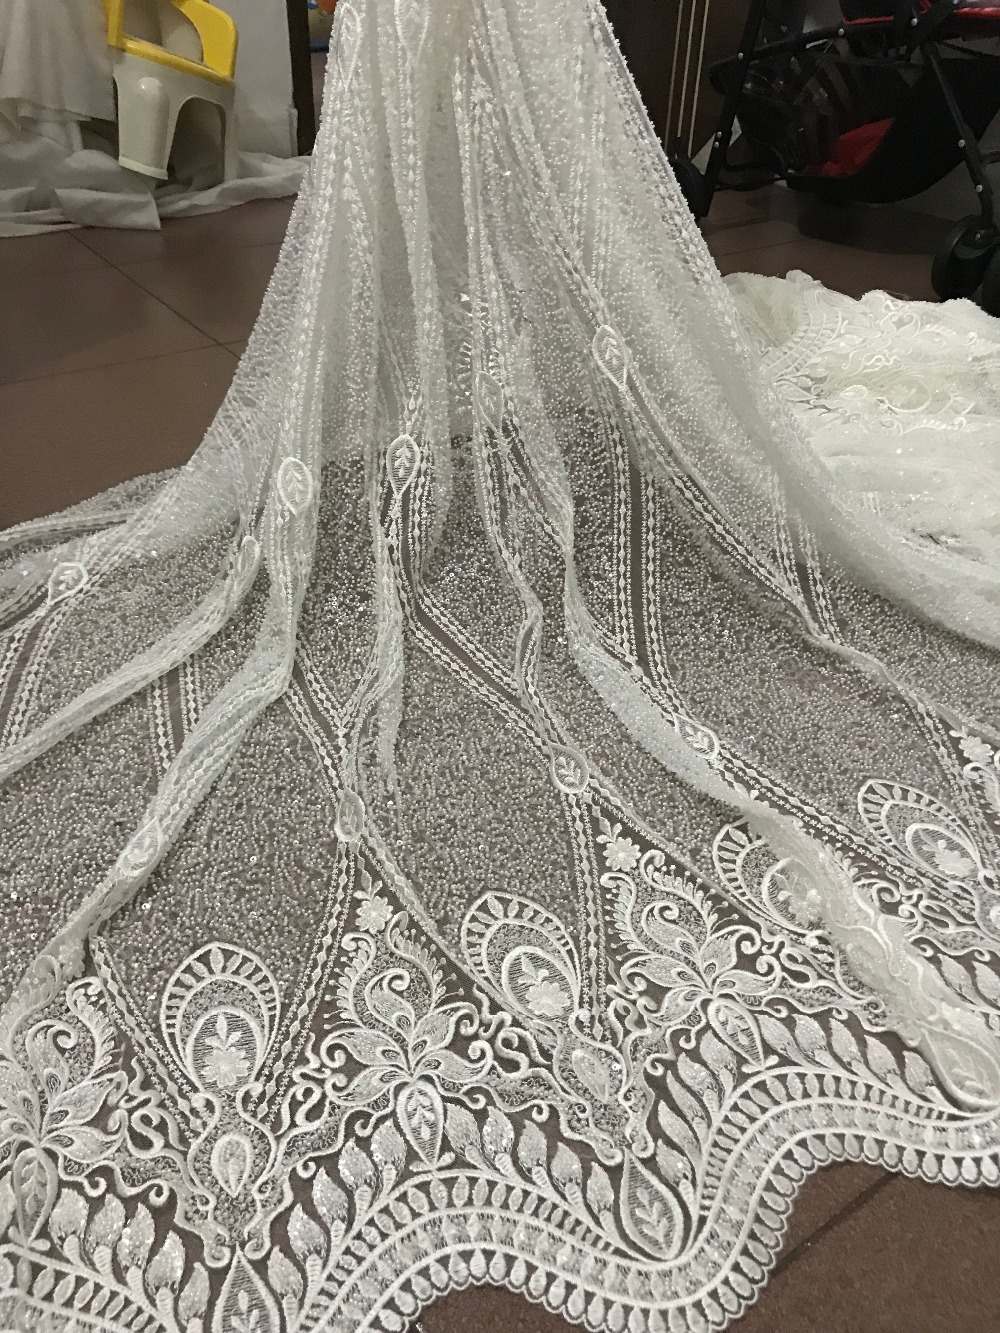 High grade tulle embroidery lace African French net lace fabric ZH-53122 with full tube beadsHigh grade tulle embroidery lace African French net lace fabric ZH-53122 with full tube beads